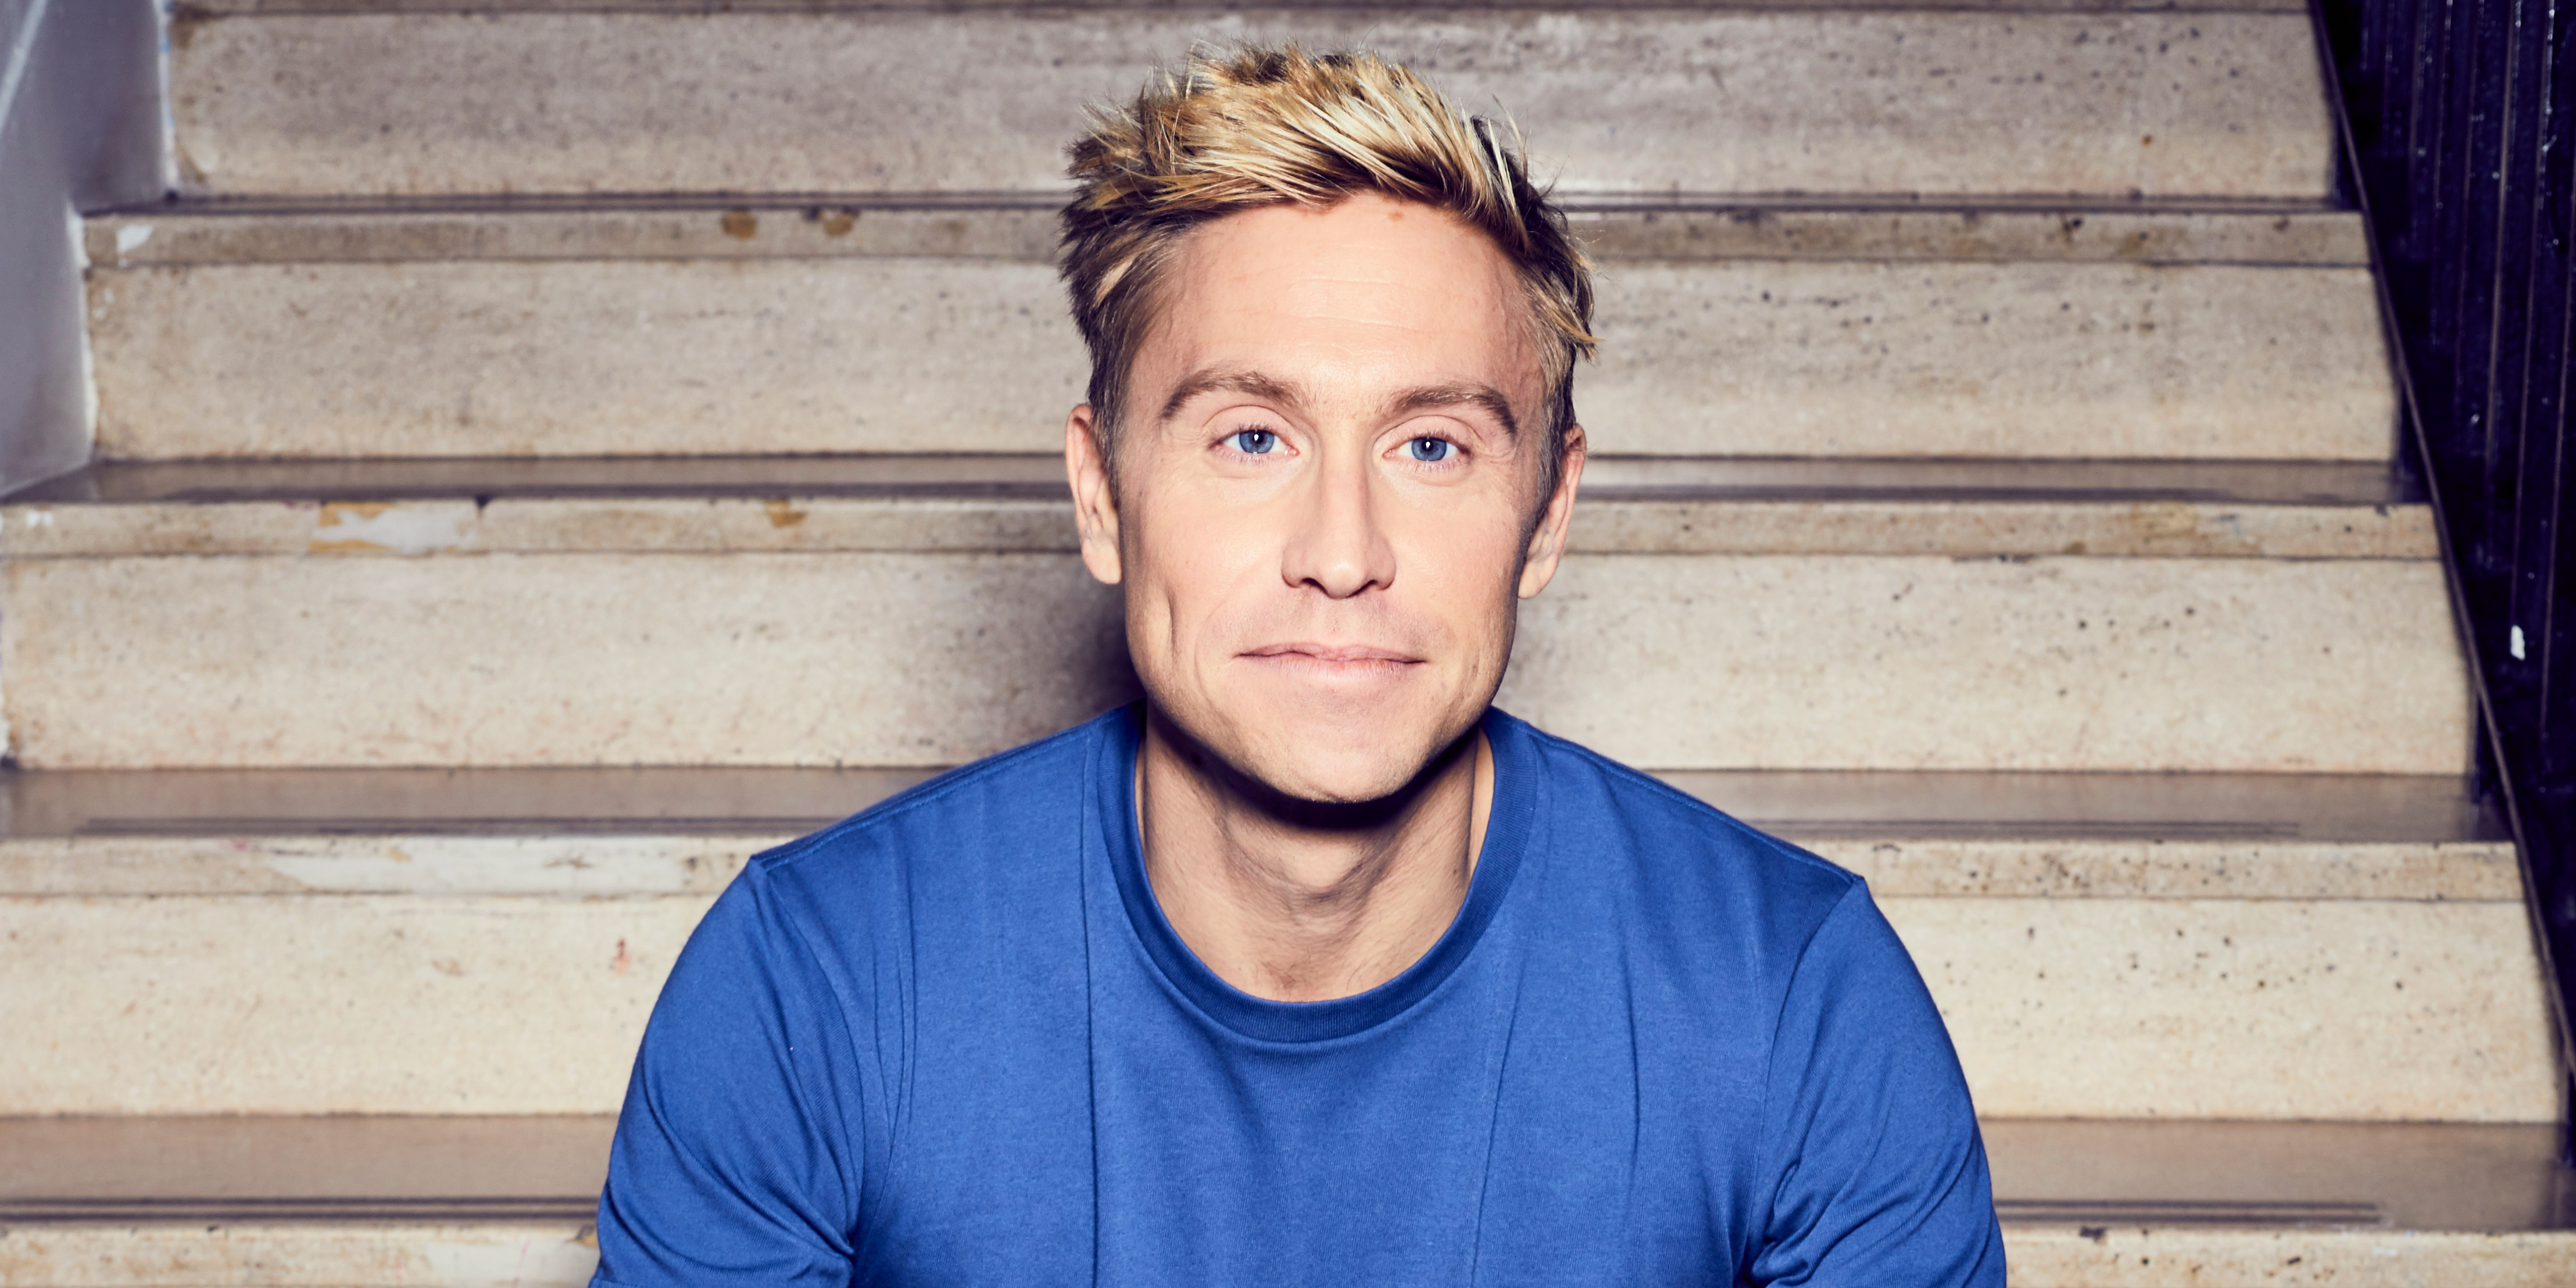 THE RUSSELL HOWARD HOUR RETURNS TO SKY ONE FOR SERIES 4 ON THURSDAY 10TH SEPTEMBER AT 10PM